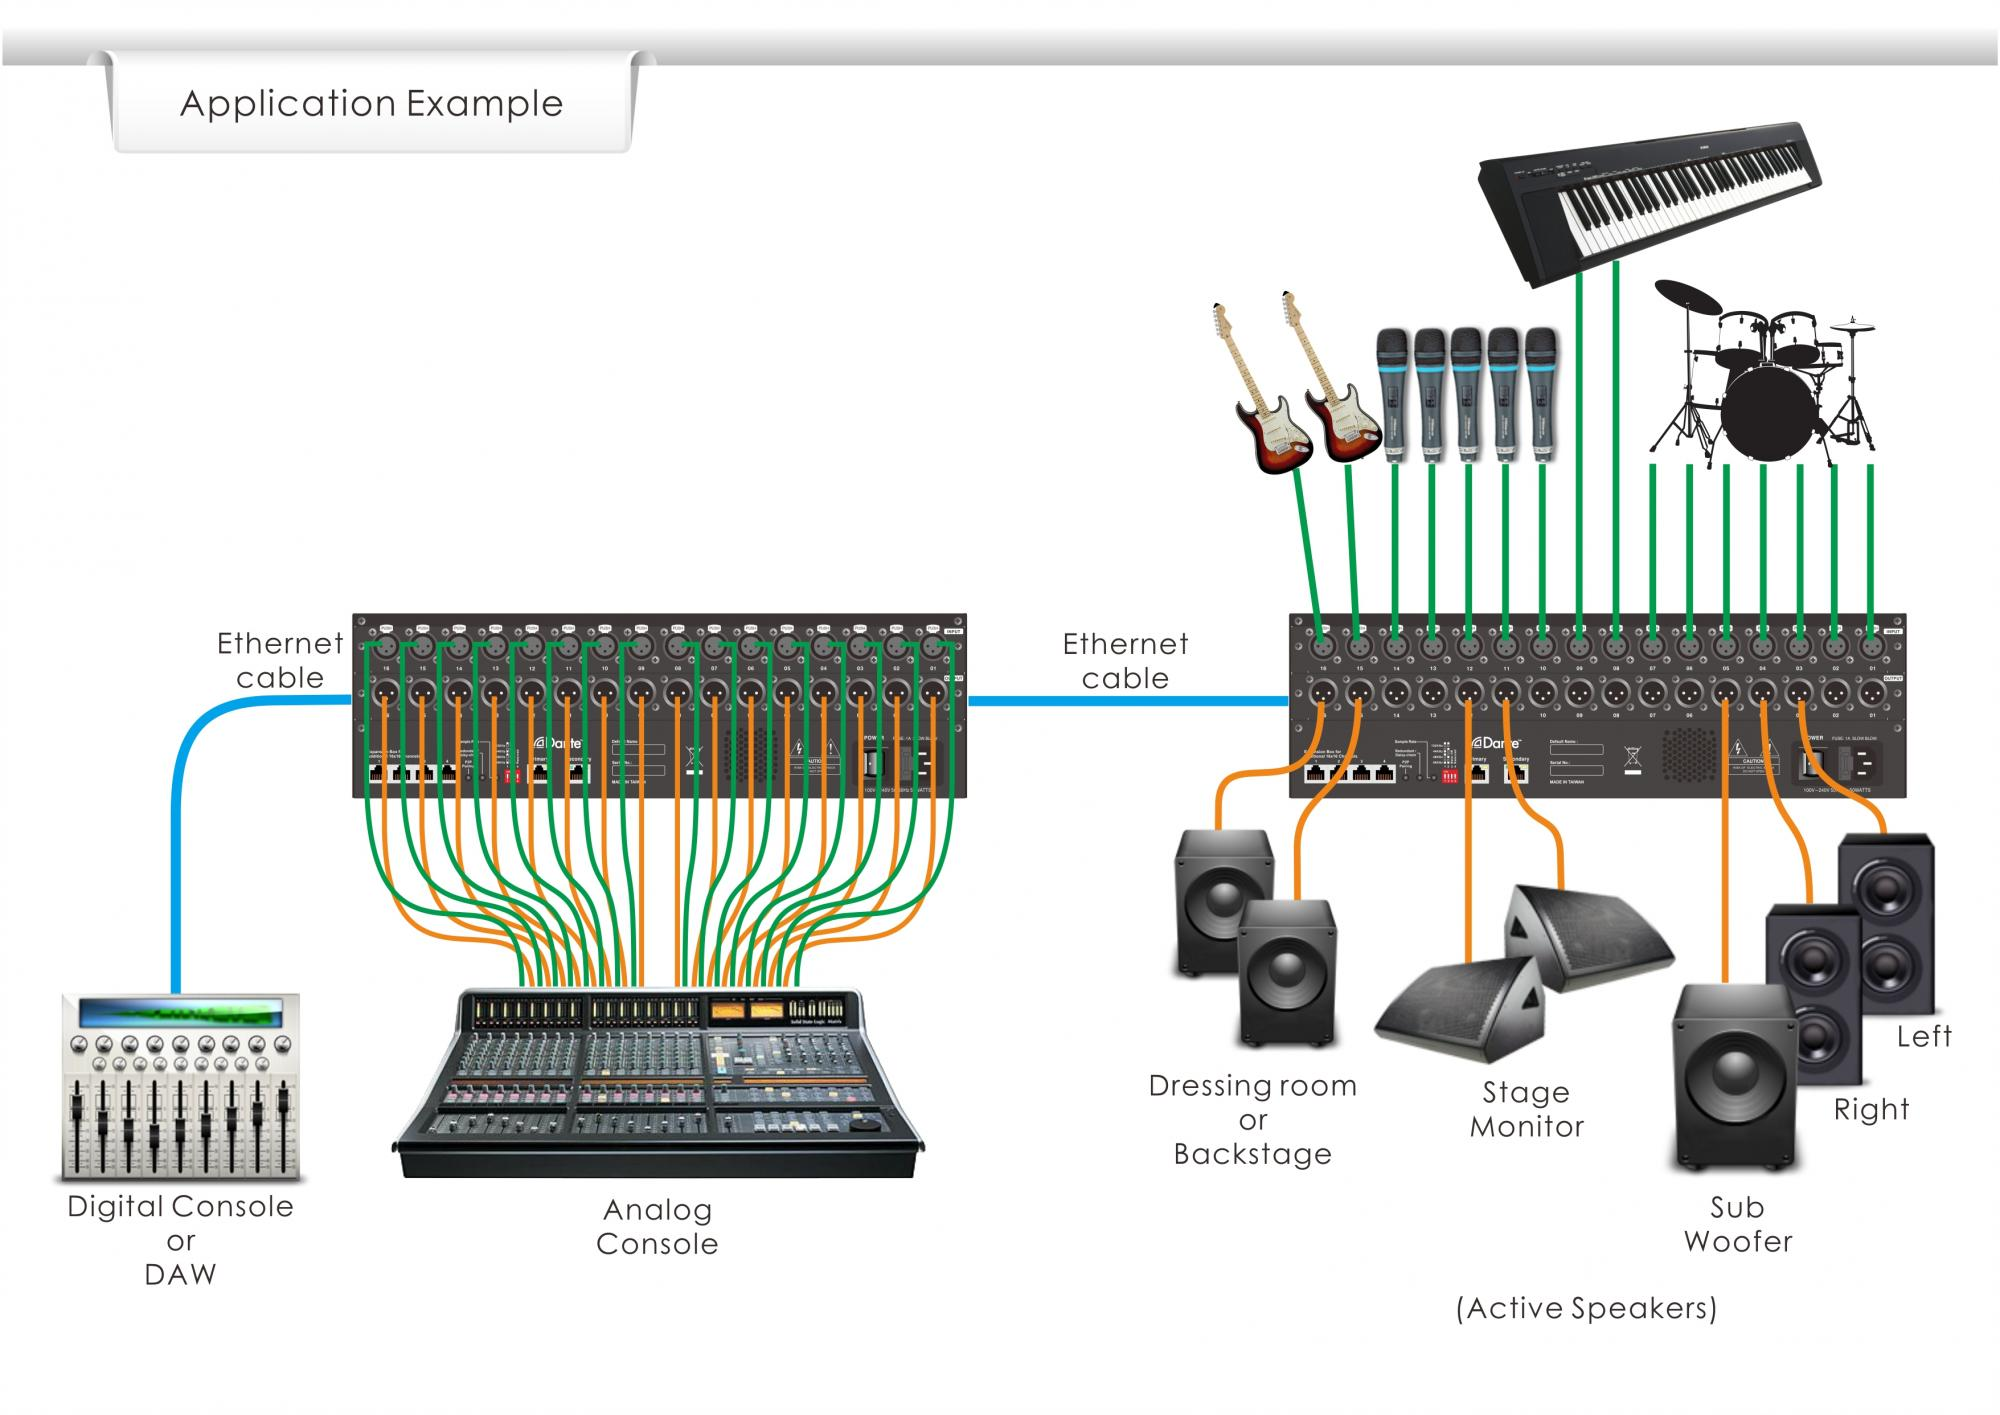 Unika Electronic Co Ltd Daisy Chain Wiring Diagram Analog By Configuring All The Nbb 1616s To Work In Redundant Mode You Can Simultaneously Stream Your Audio Two Virtually Independent Networks Significantly